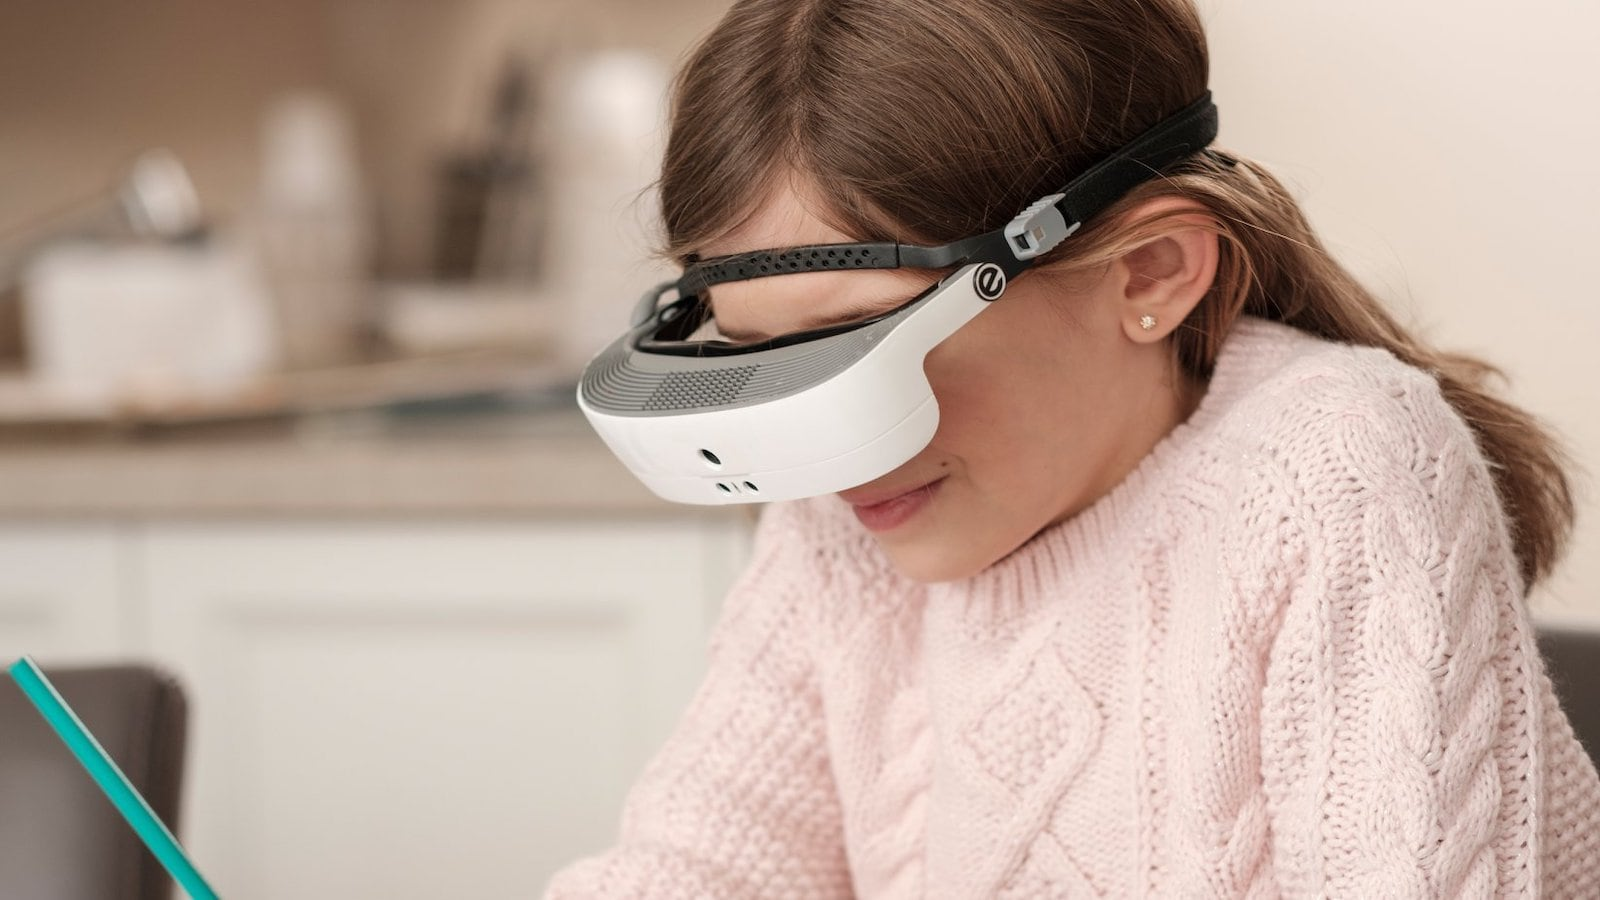 eSight 3 Electronic Eyewear enhances sight for people with visual impairments